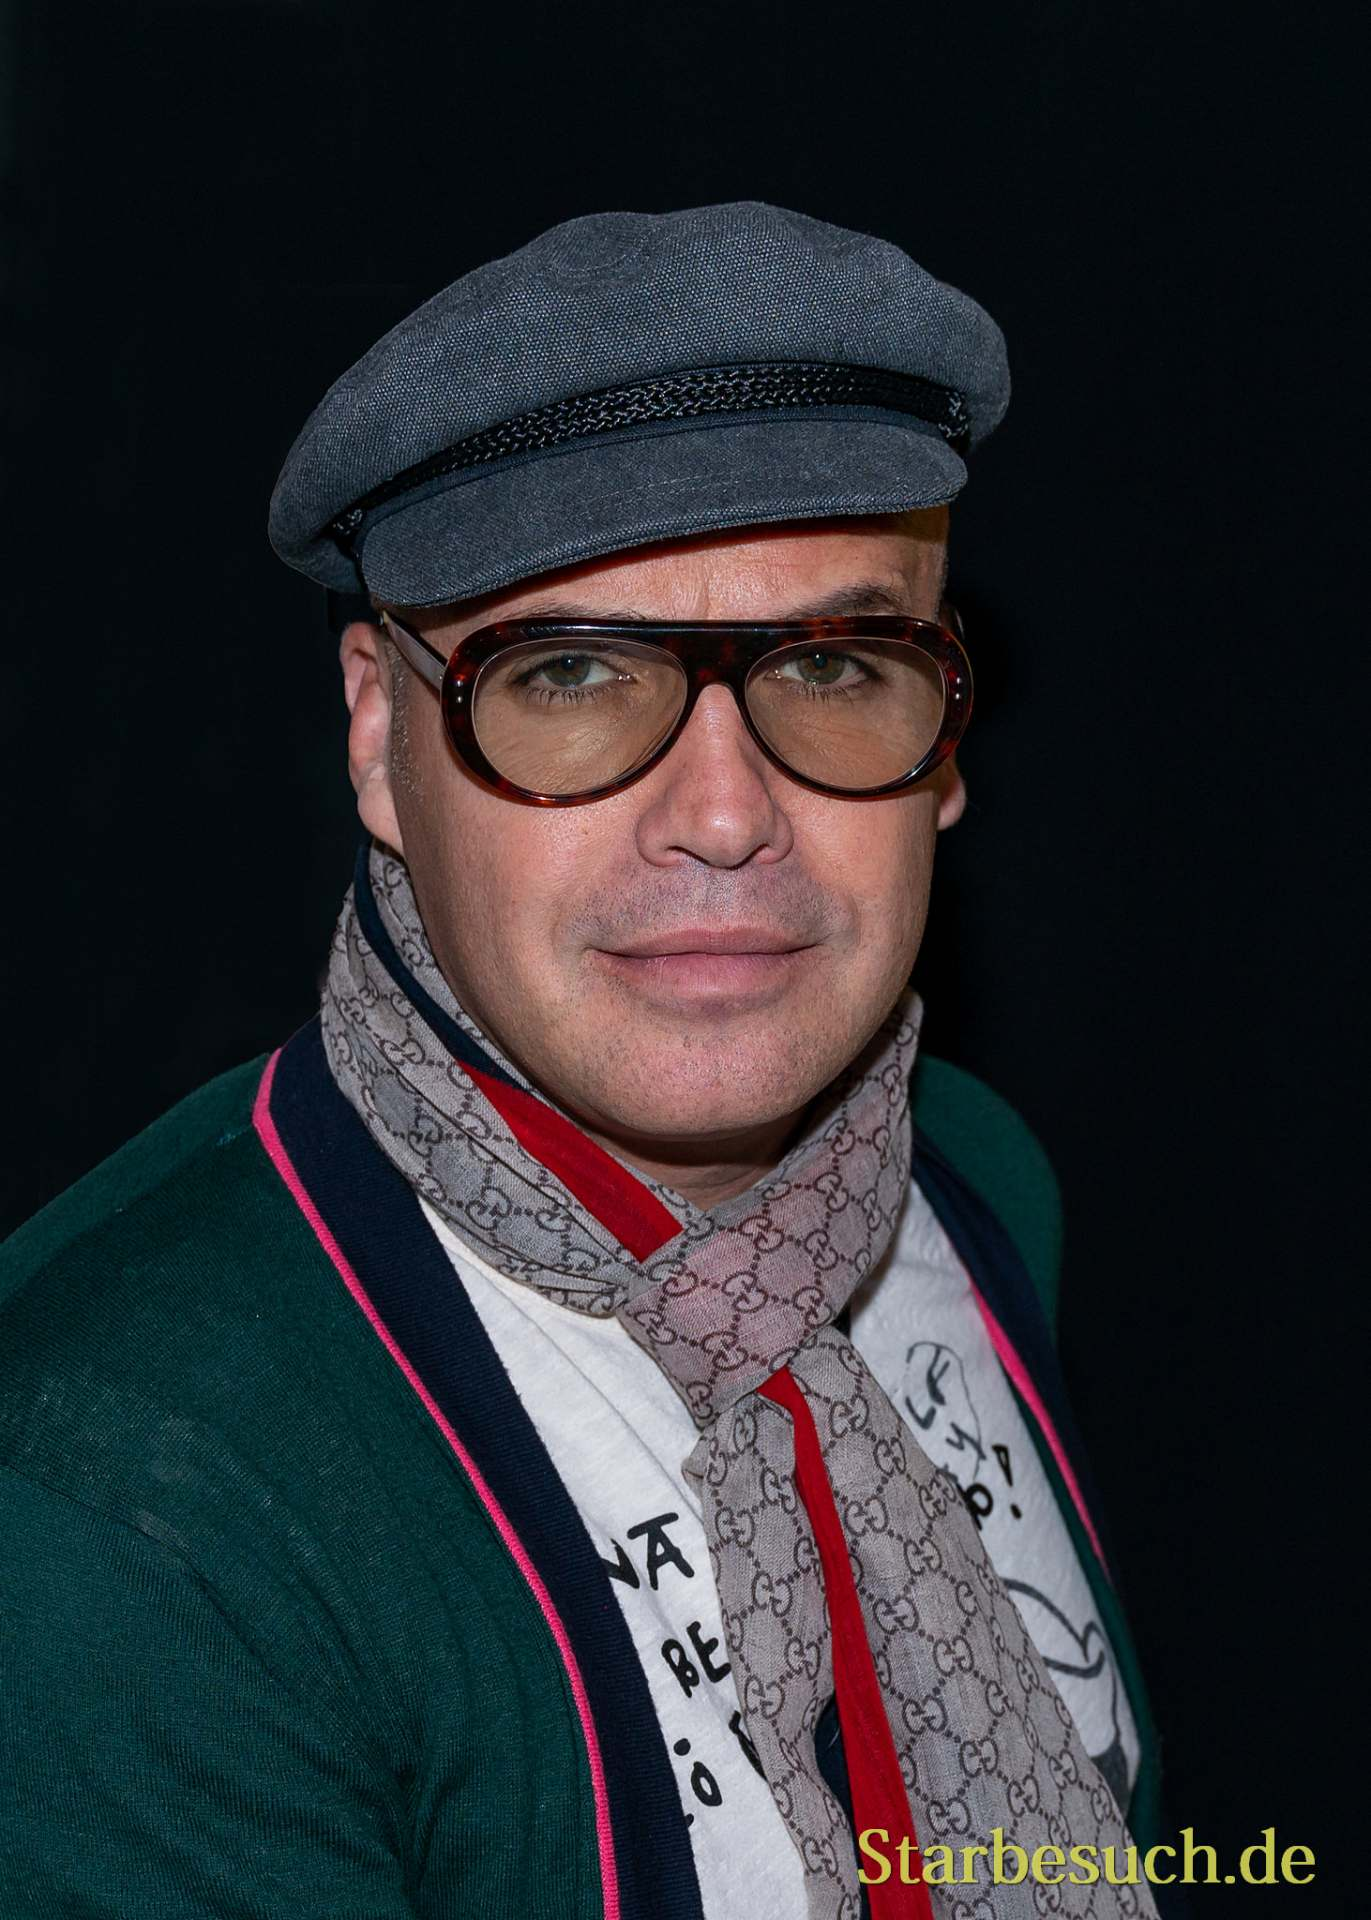 DORTMUND, GERMANY - December 8th 2019: Billy Zane at German Comic Con Dortmund